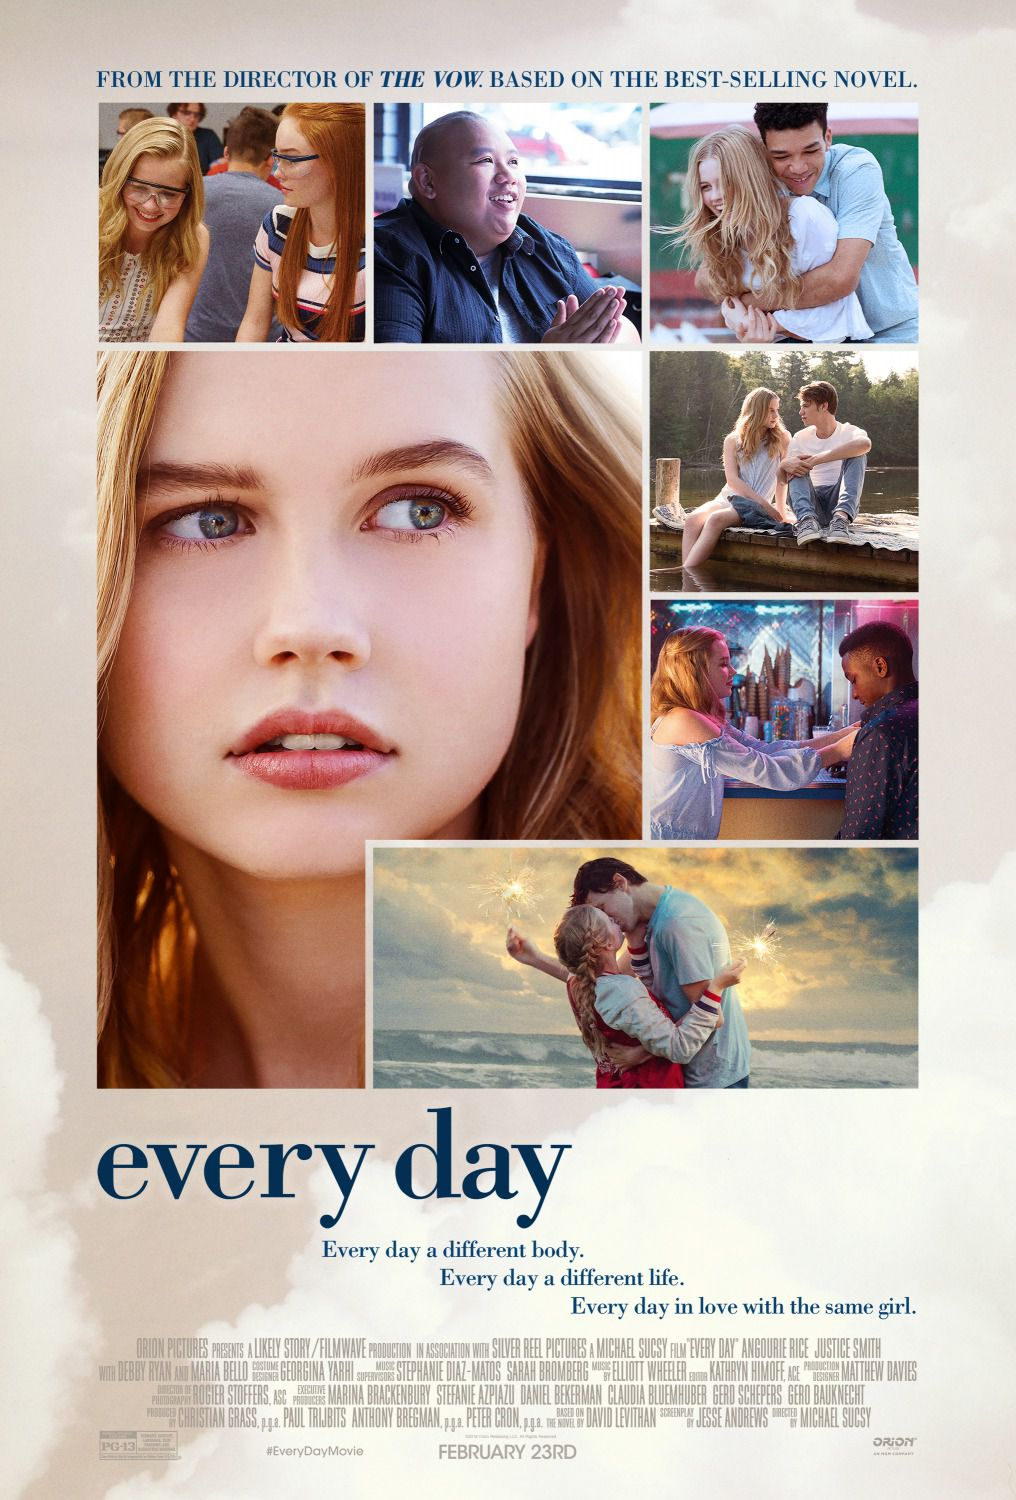 Every Day - Angourie Rice, Maria Bello - film poster love story 2018